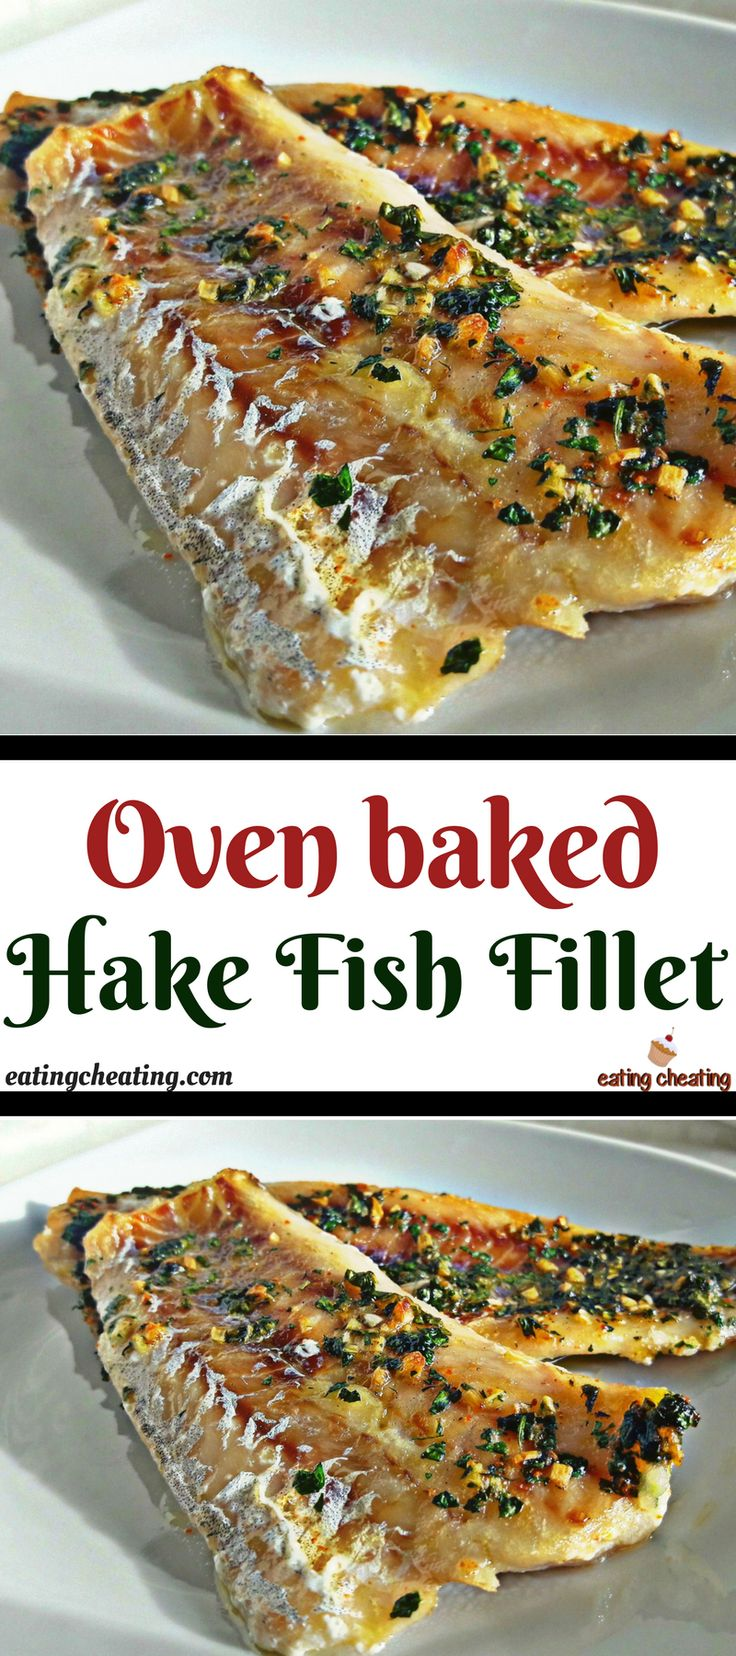 Who doesn't love nice baked fish in the oven combined with delicious potatoes and salad? Here you can see how easy is to prepare hake fish fillet in the oven. Delicious hake fish full of vitamins and good omega 3 fats perfect for lunch or dinner.